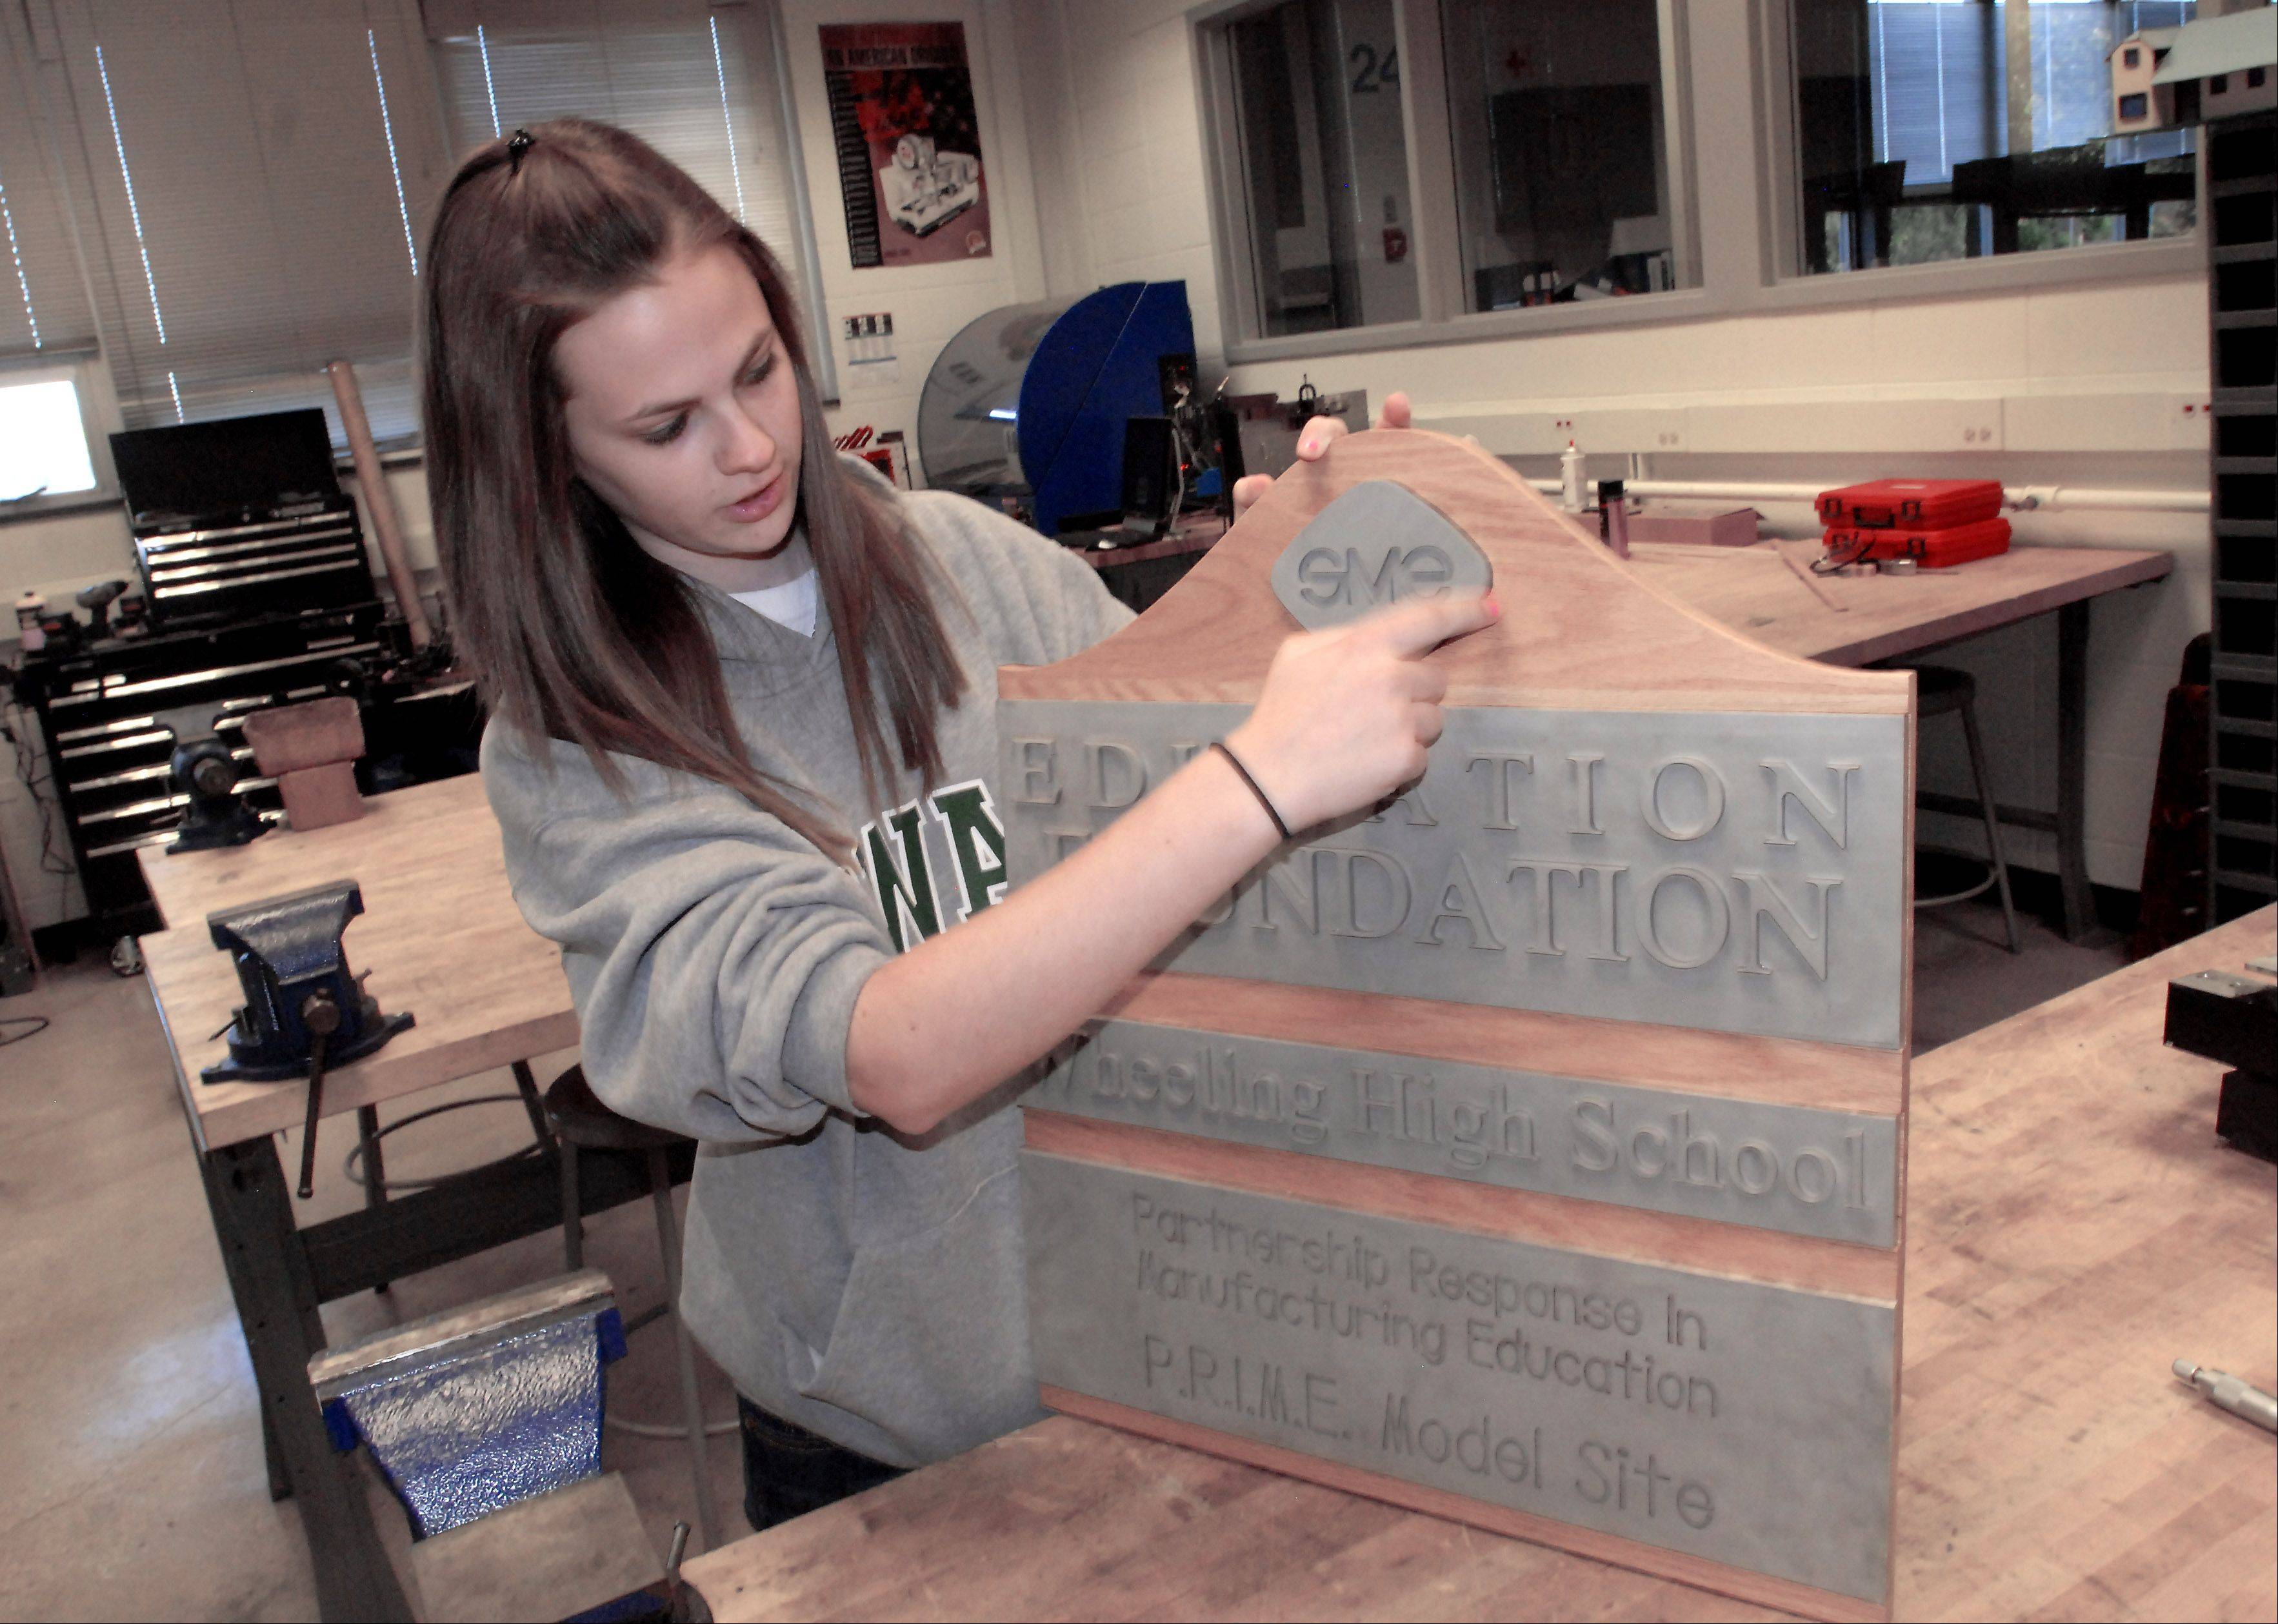 Wheeling High School sophomore Stacey Wojtkiewicz describes intricacies in her metalwork for a Society of Manufacturing Engineers Educational Foundation sign made in the school's manufacturing lab.